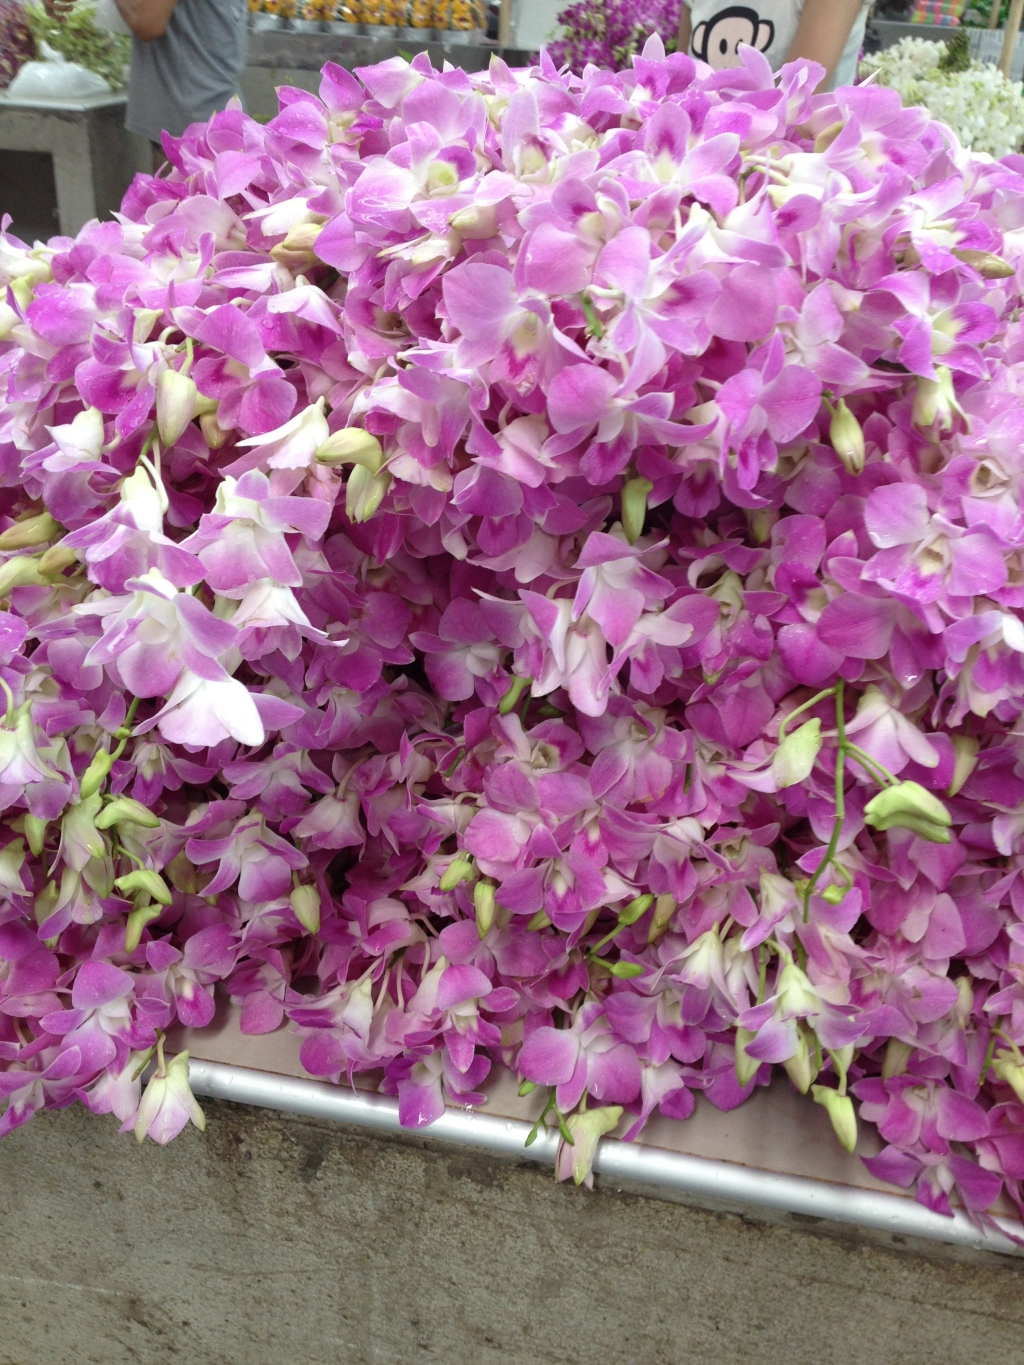 Pile of Orchids--$1 USD for a large bunch.